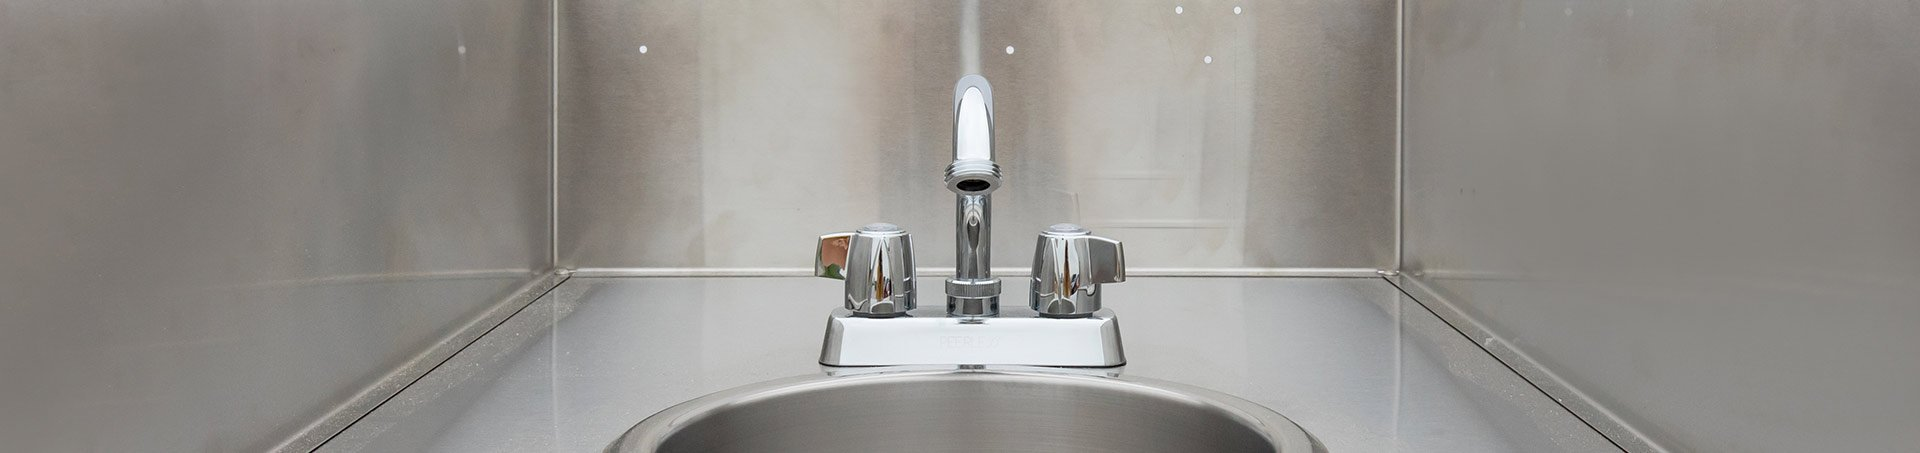 Sink Systems